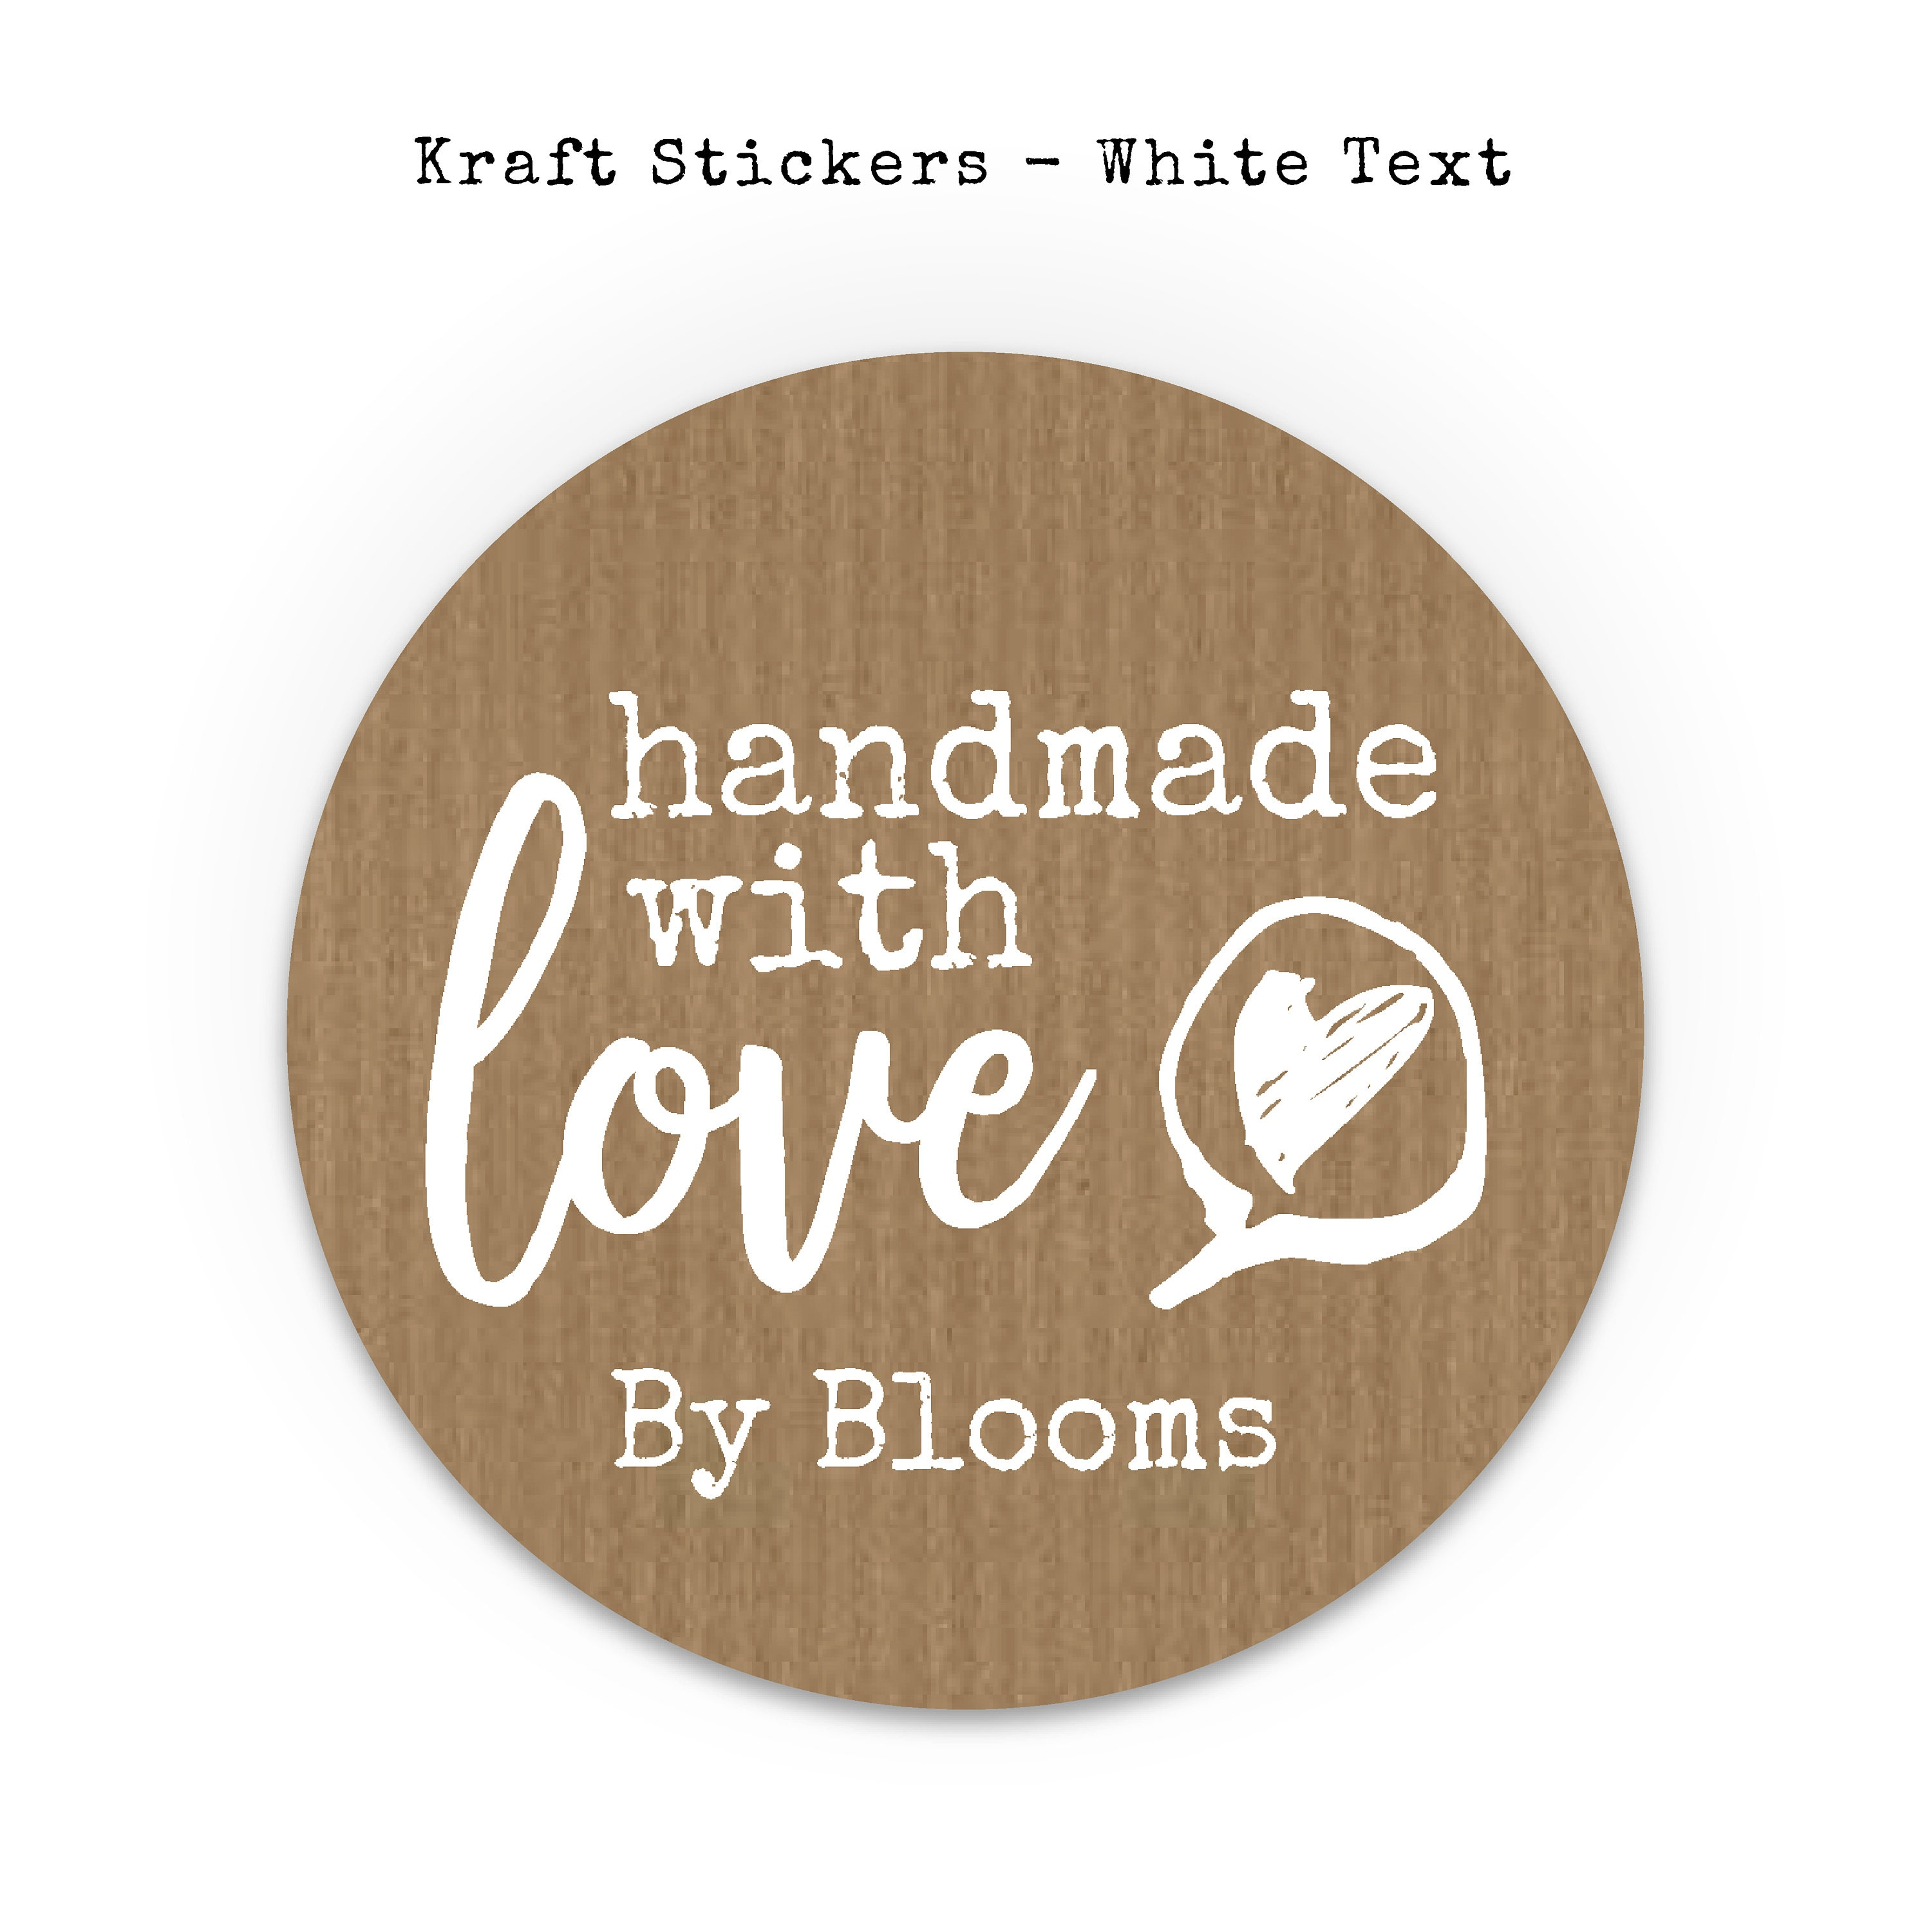 Handmade with love stickers sheet custom sticker labels personalised sticker made with love stickers round kraft paper stickers